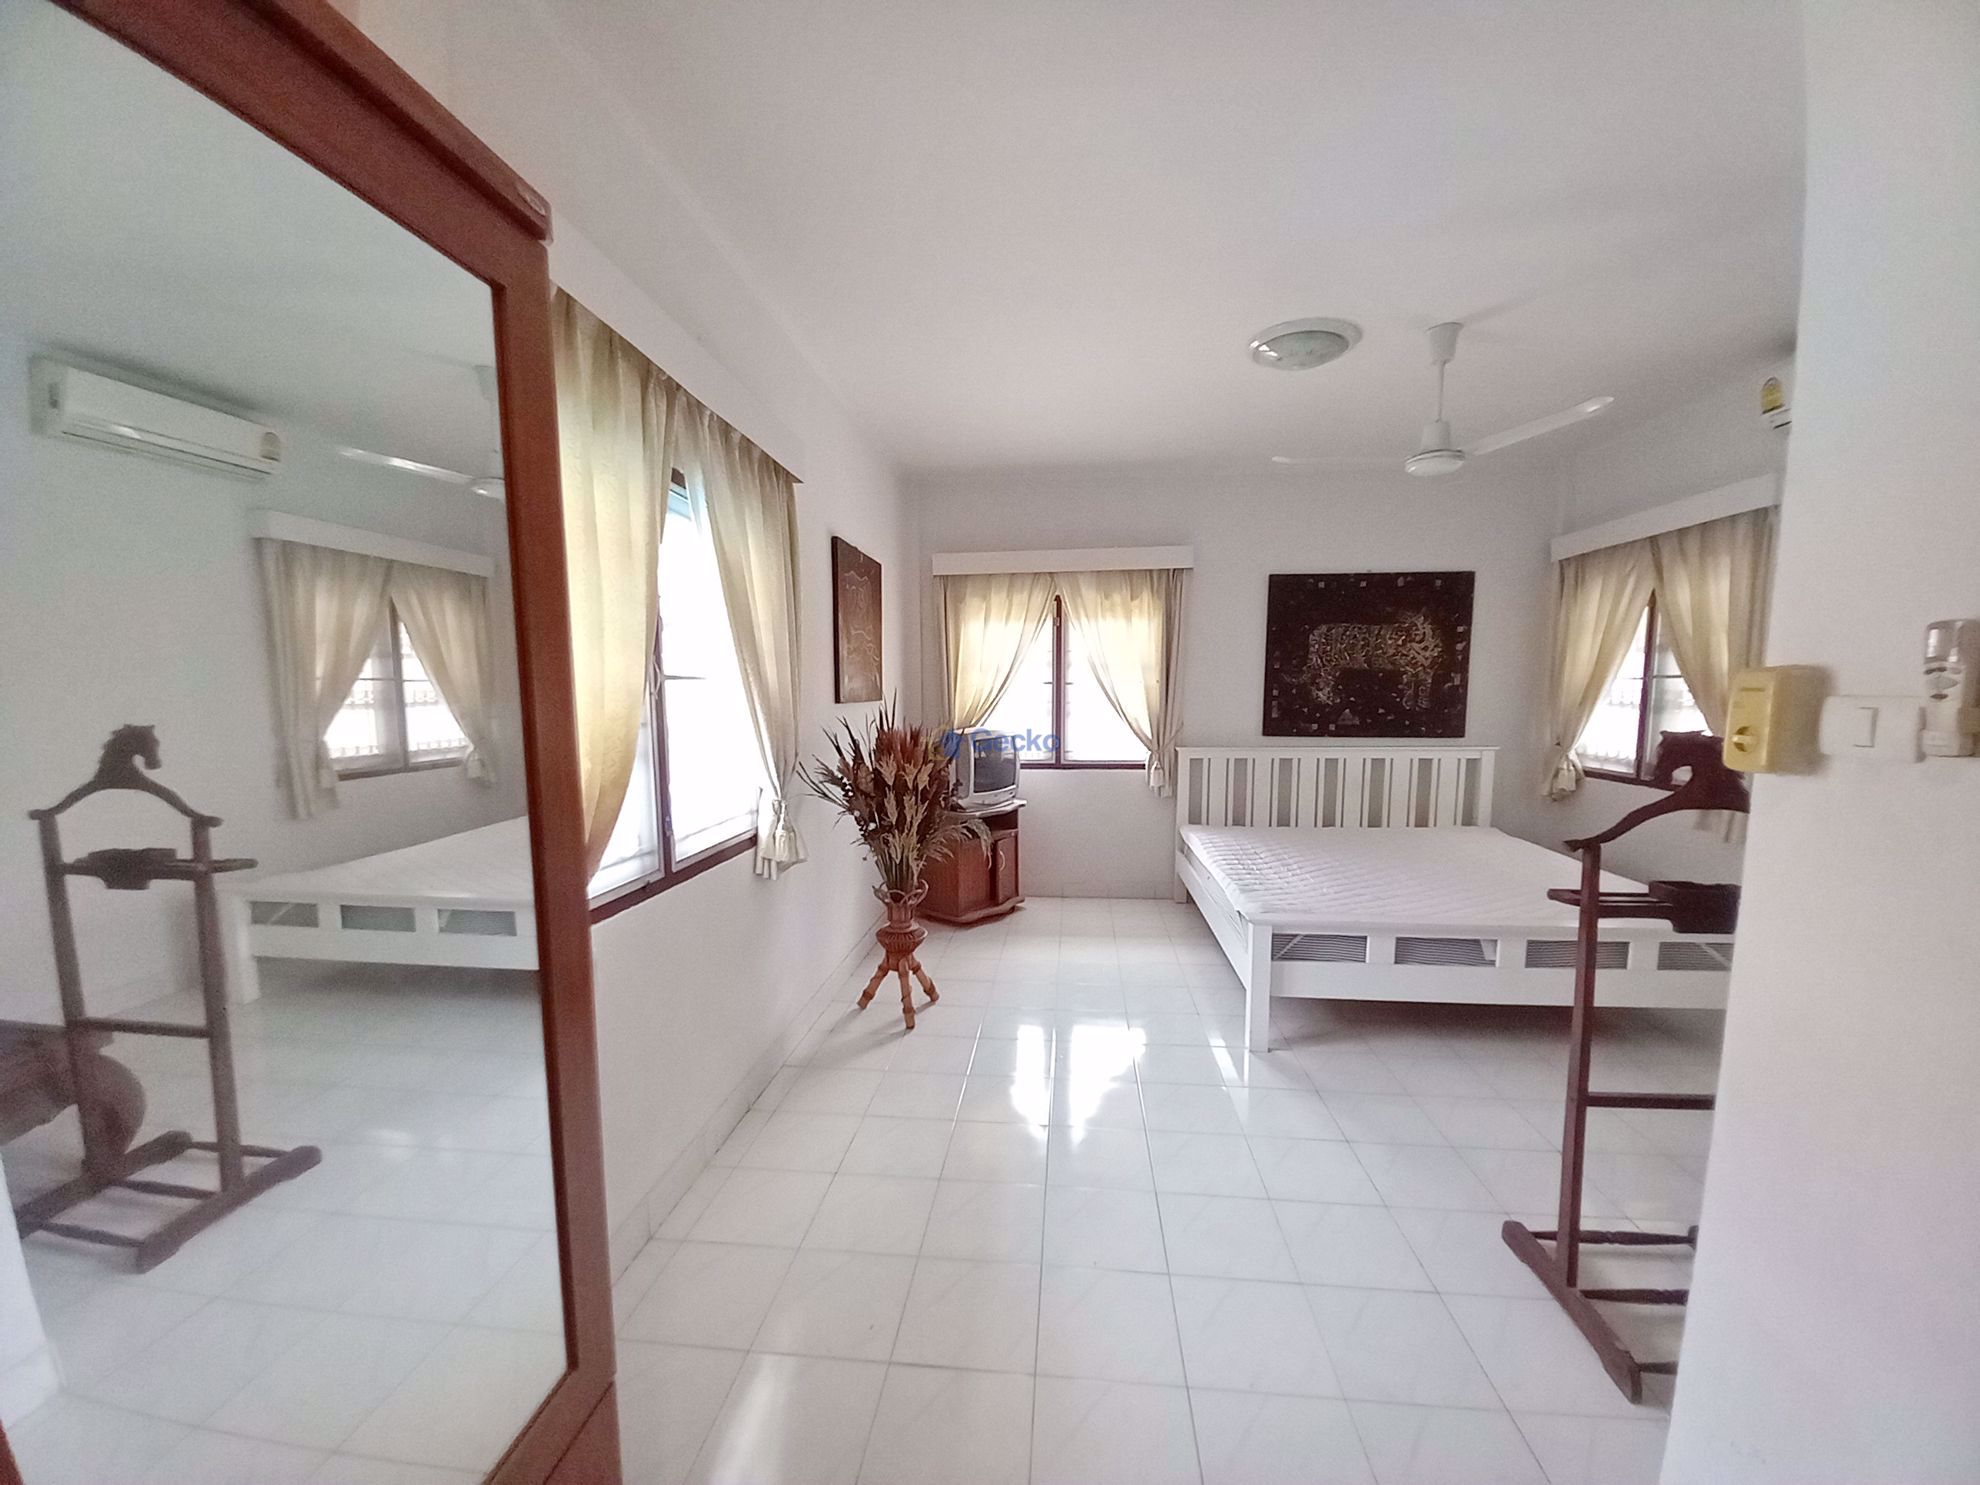 Picture of 3 Bedrooms bed in House in Suksabai Villa in South Pattaya H009325